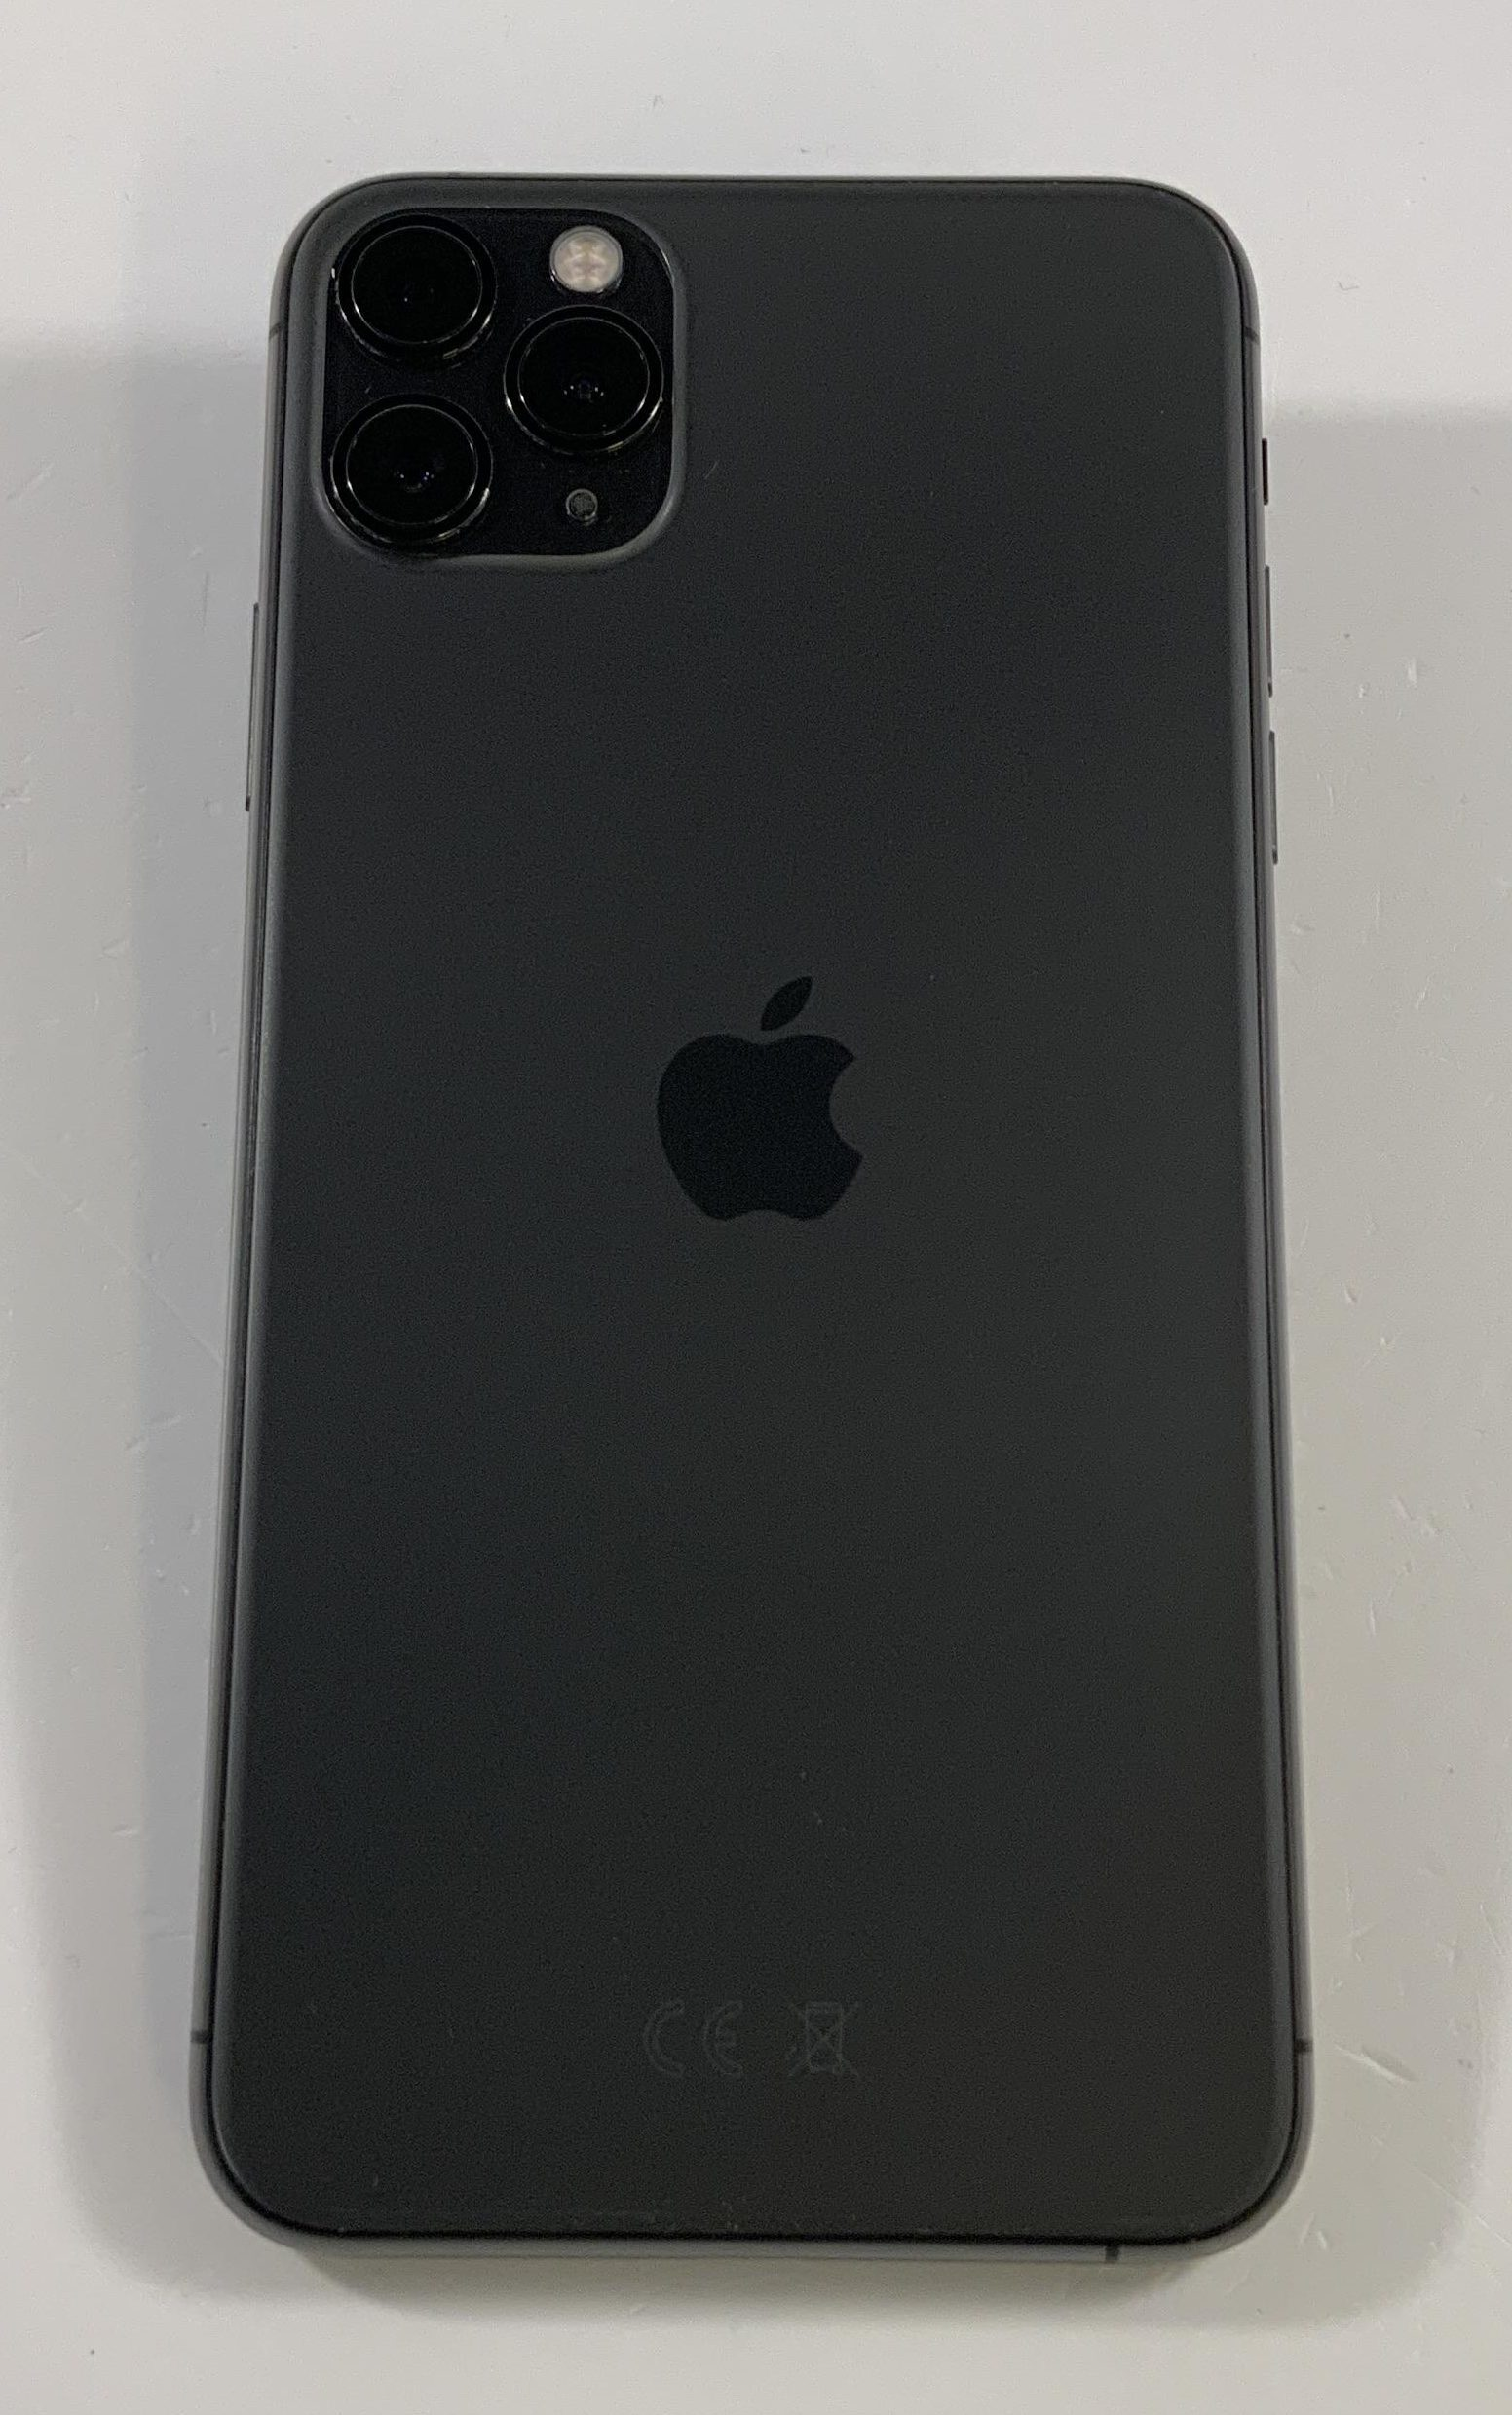 iPhone 11 Pro Max 256GB, 256GB, Space Gray, imagen 2